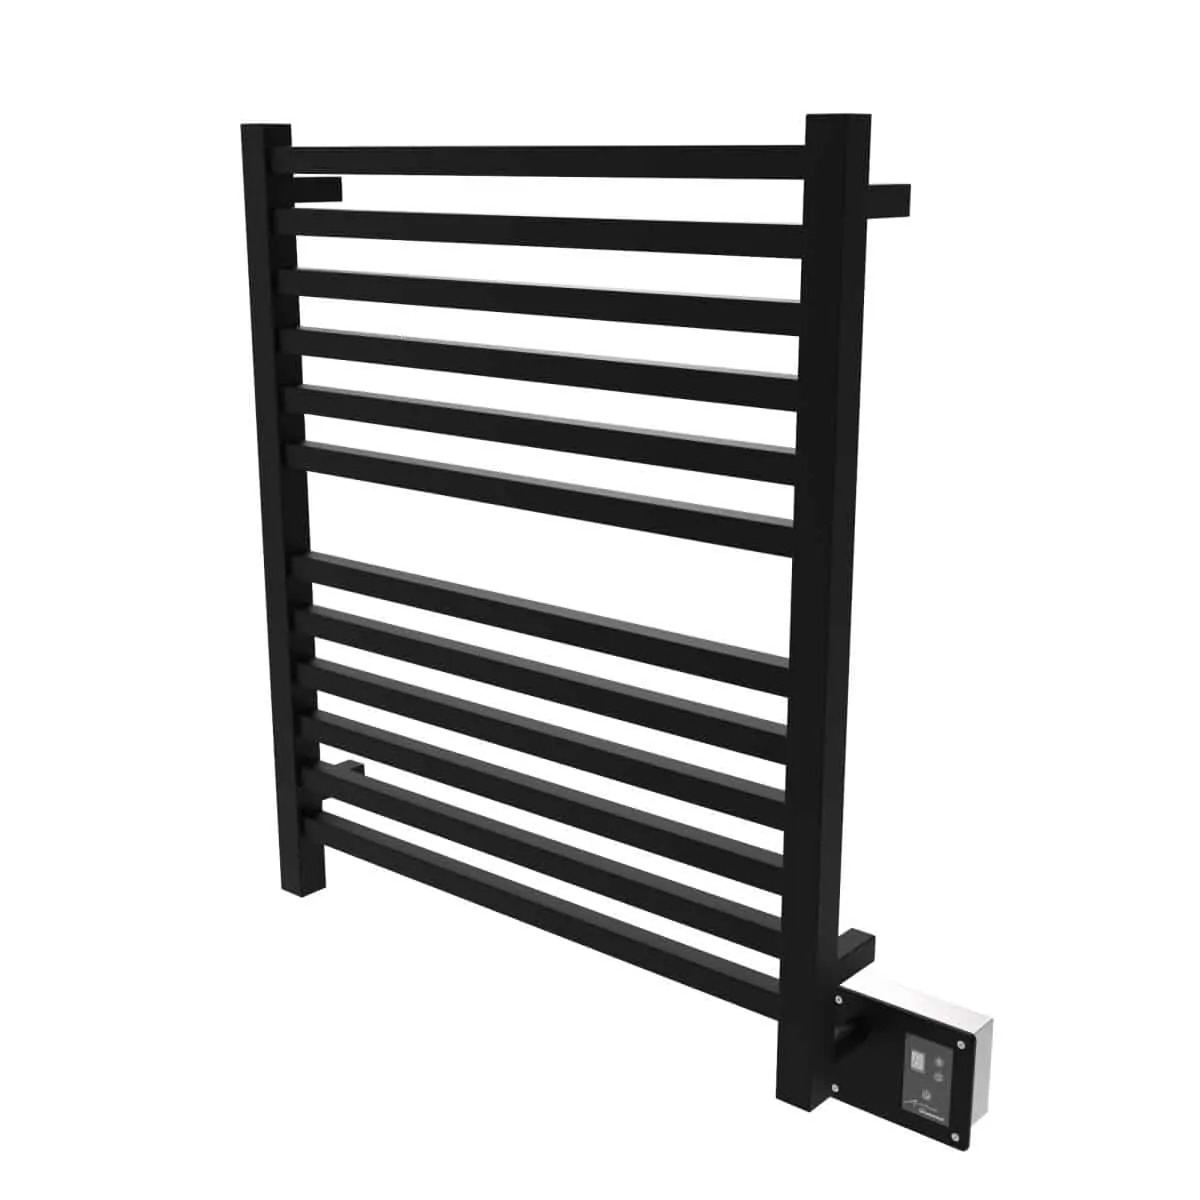 Amba Q2833MB Quadro Heated Towel Rack - Matte Black